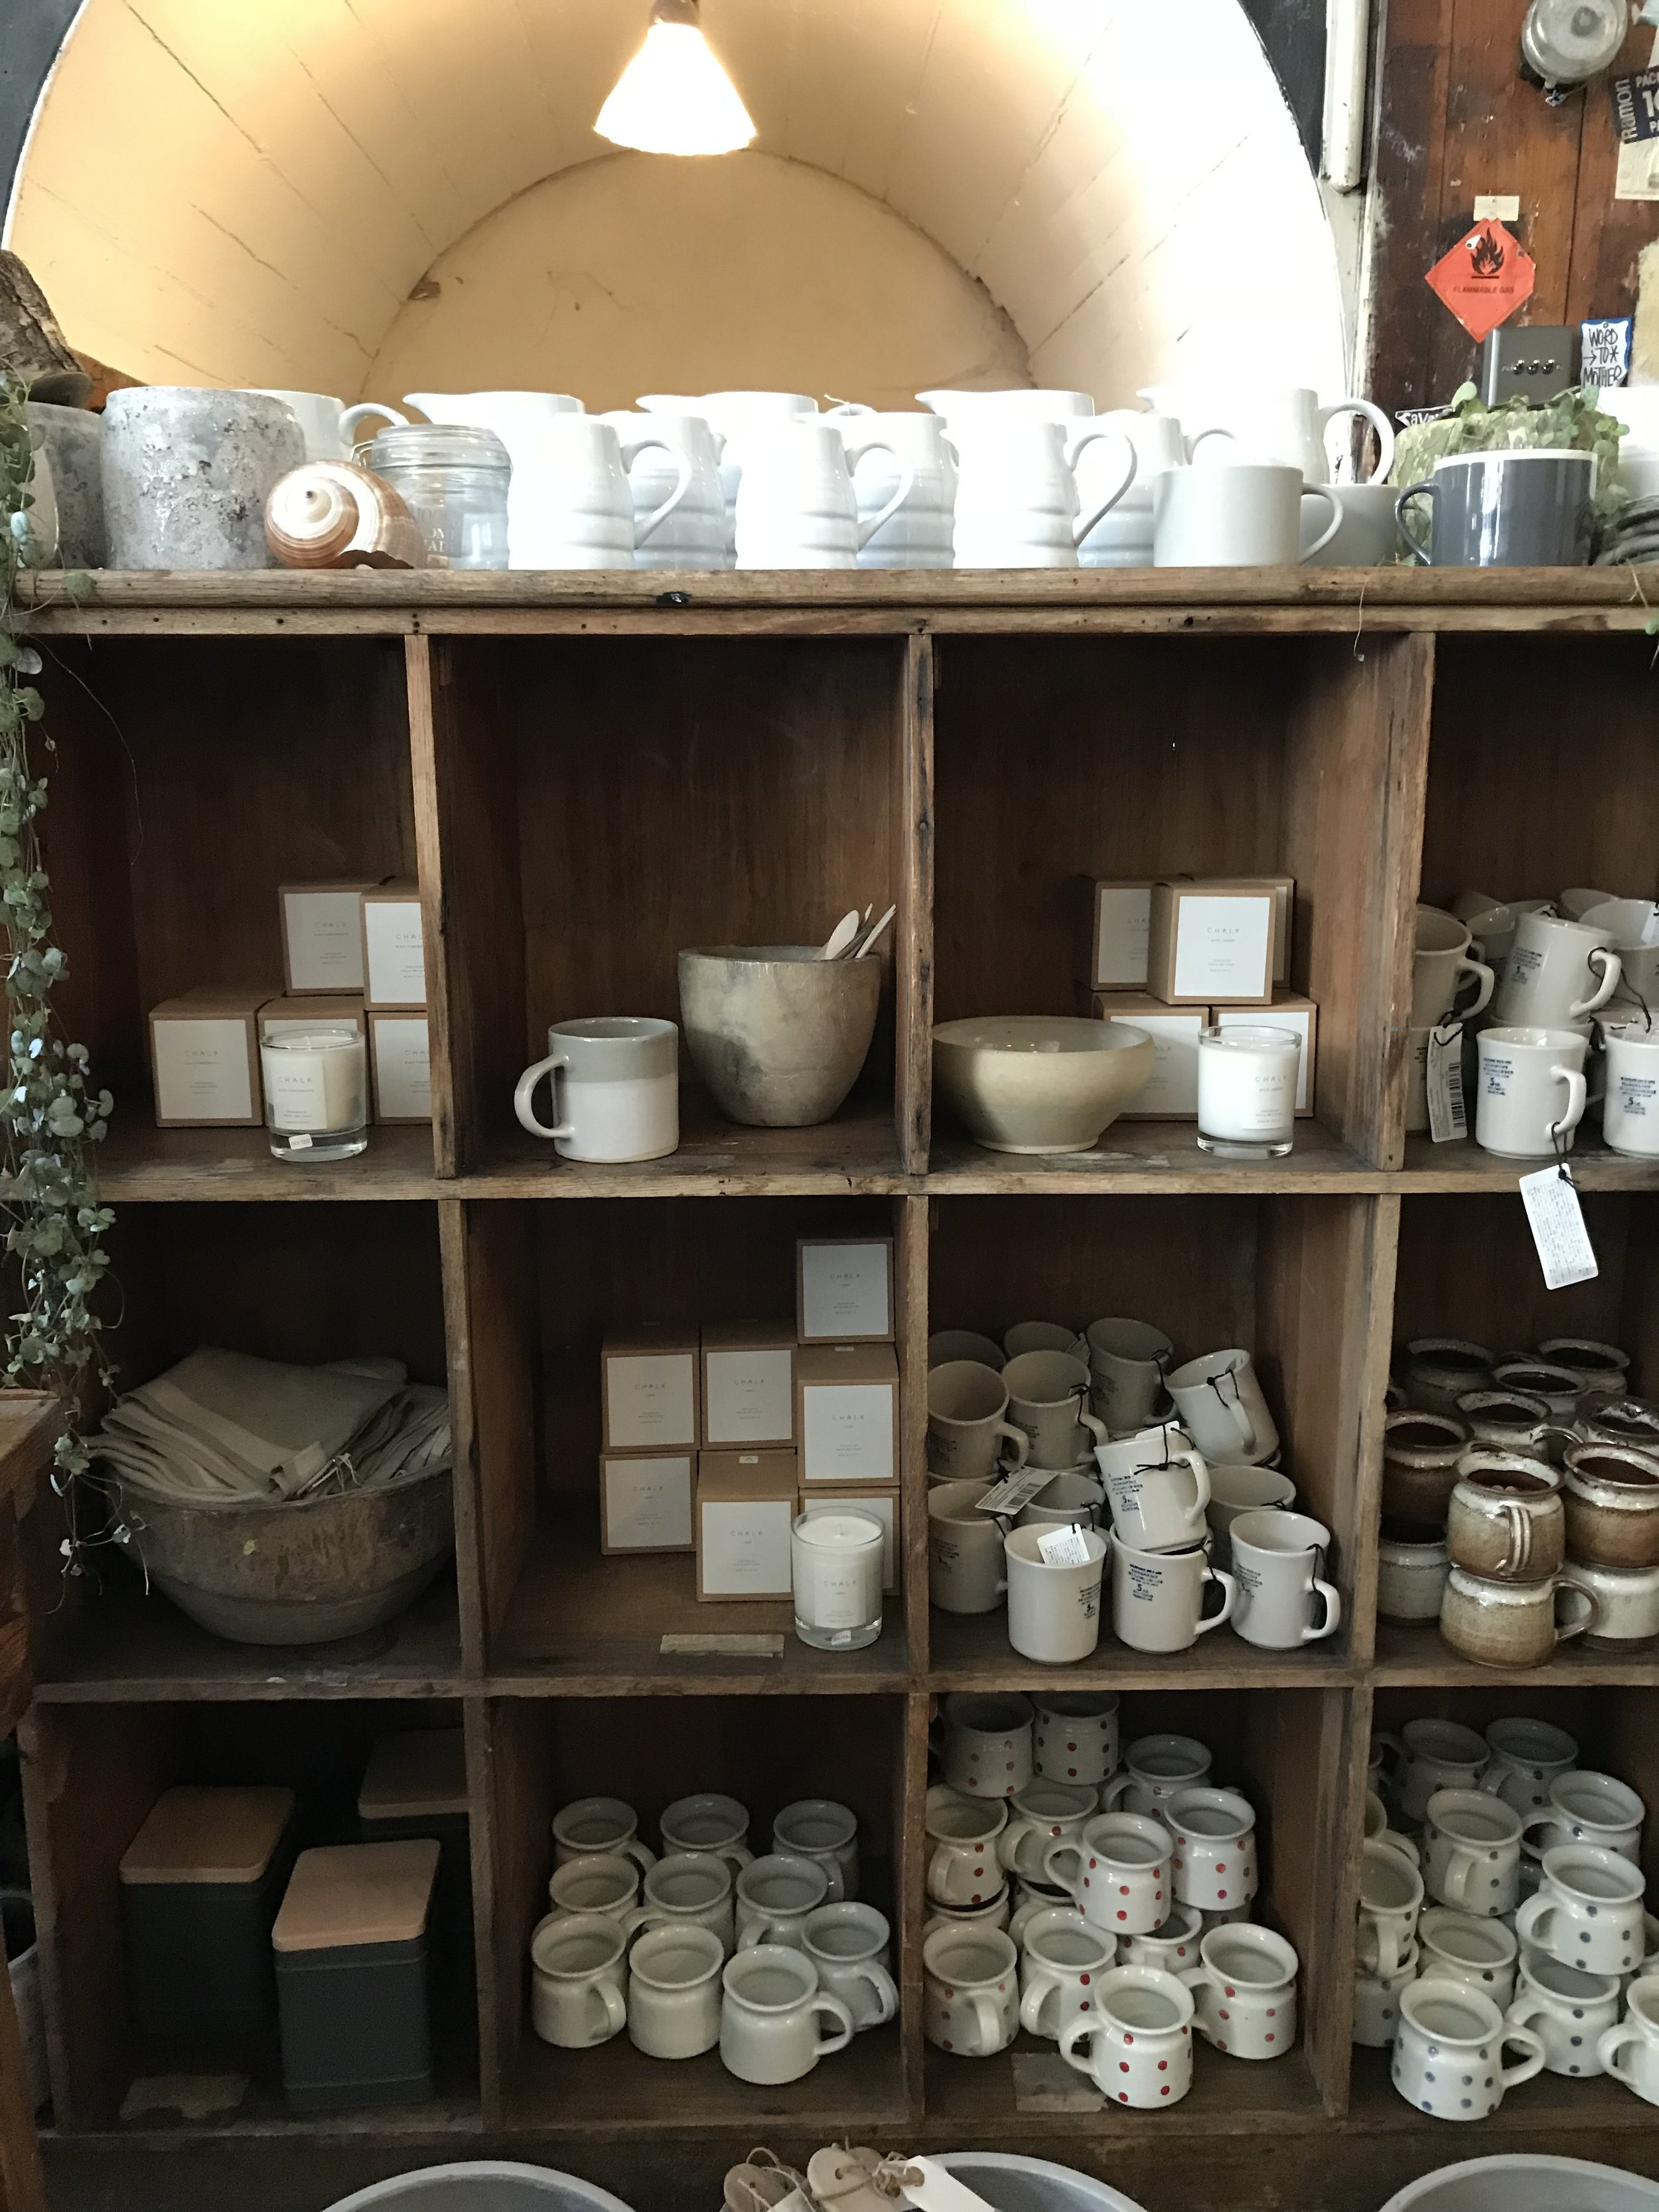 Hastings and vintage homeware, like peas in a pod!